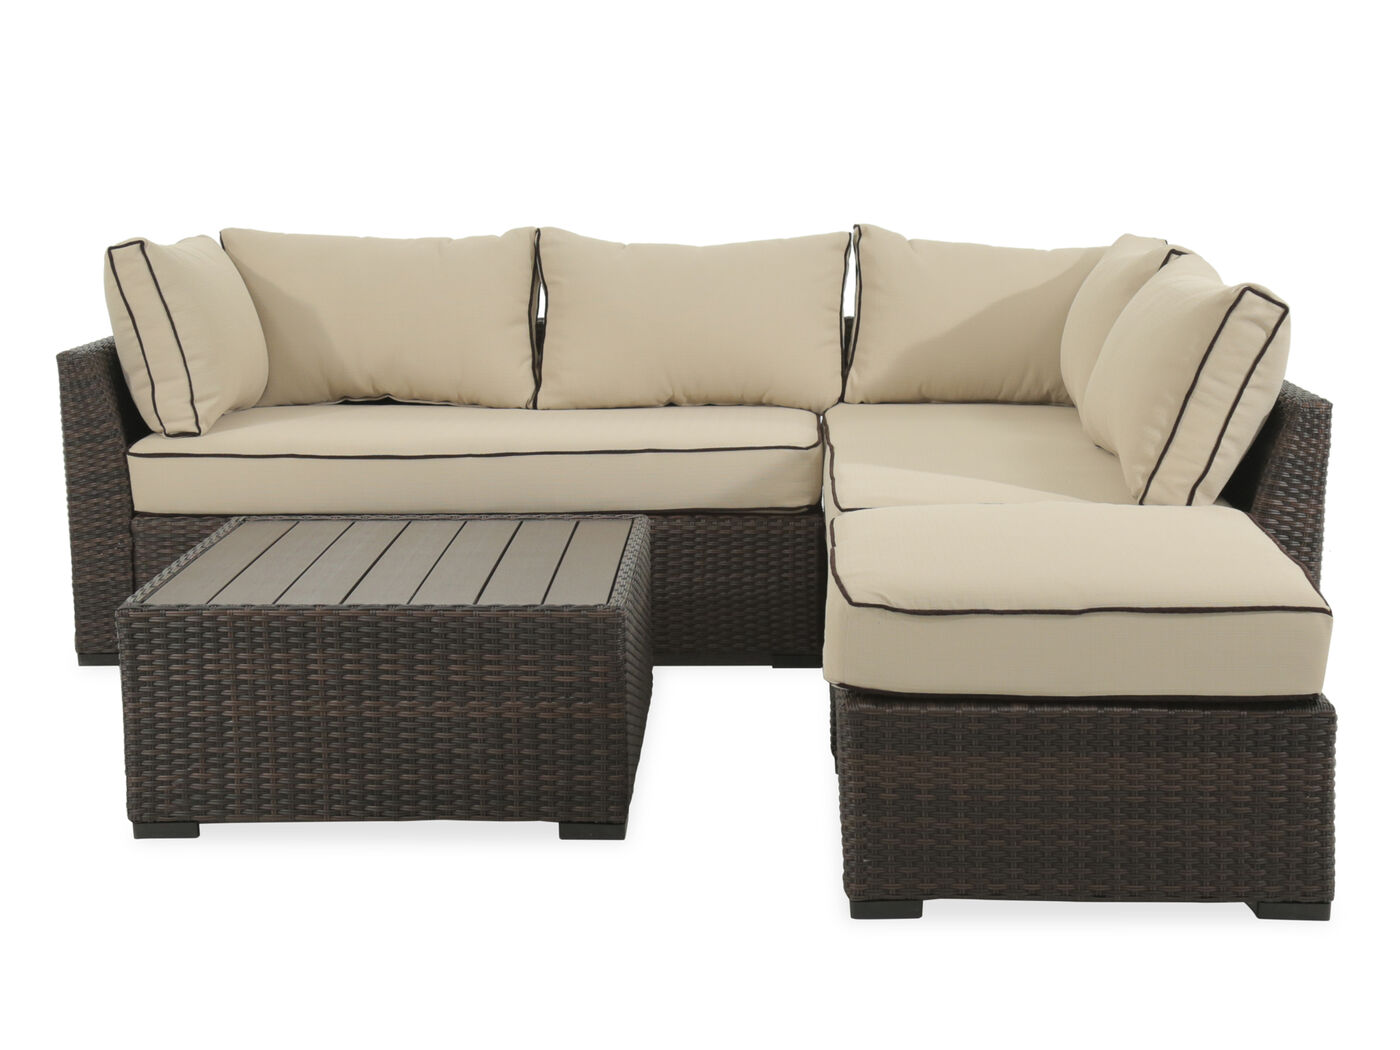 Mathis Brothers Patio Furniture ashley loughran four-piece brown outdoor sectional set | mathis